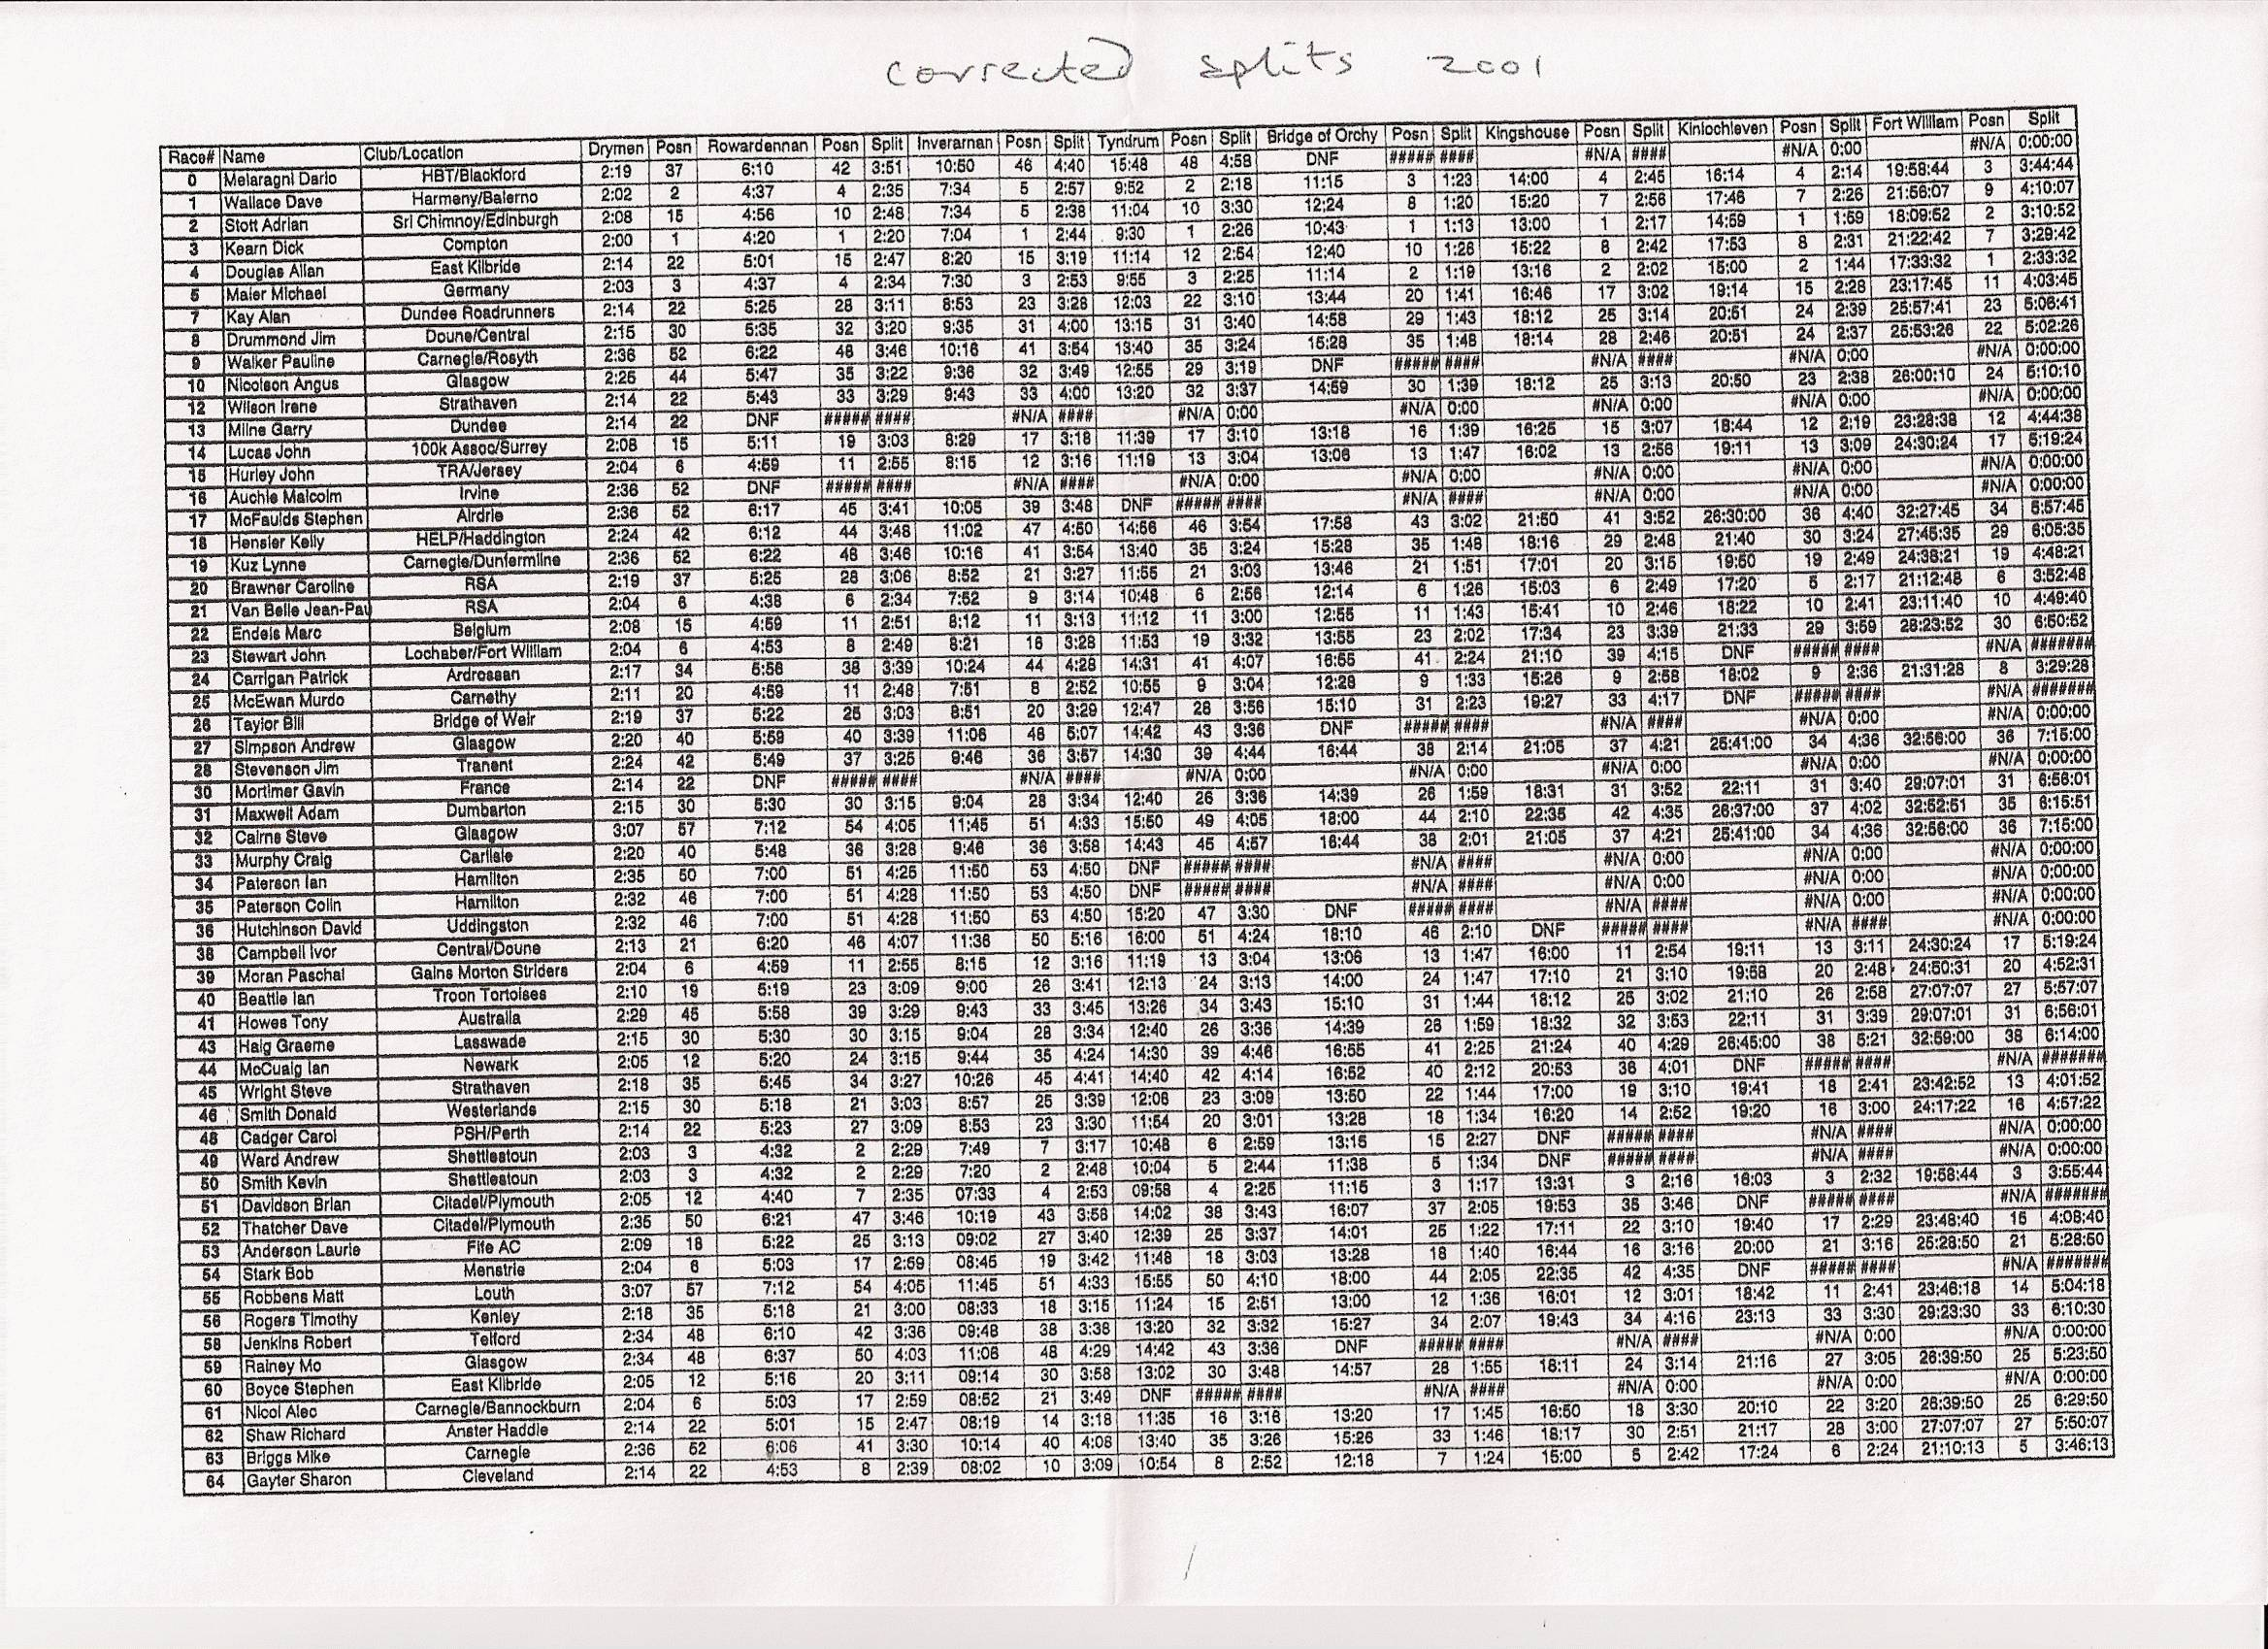 whwresults2001